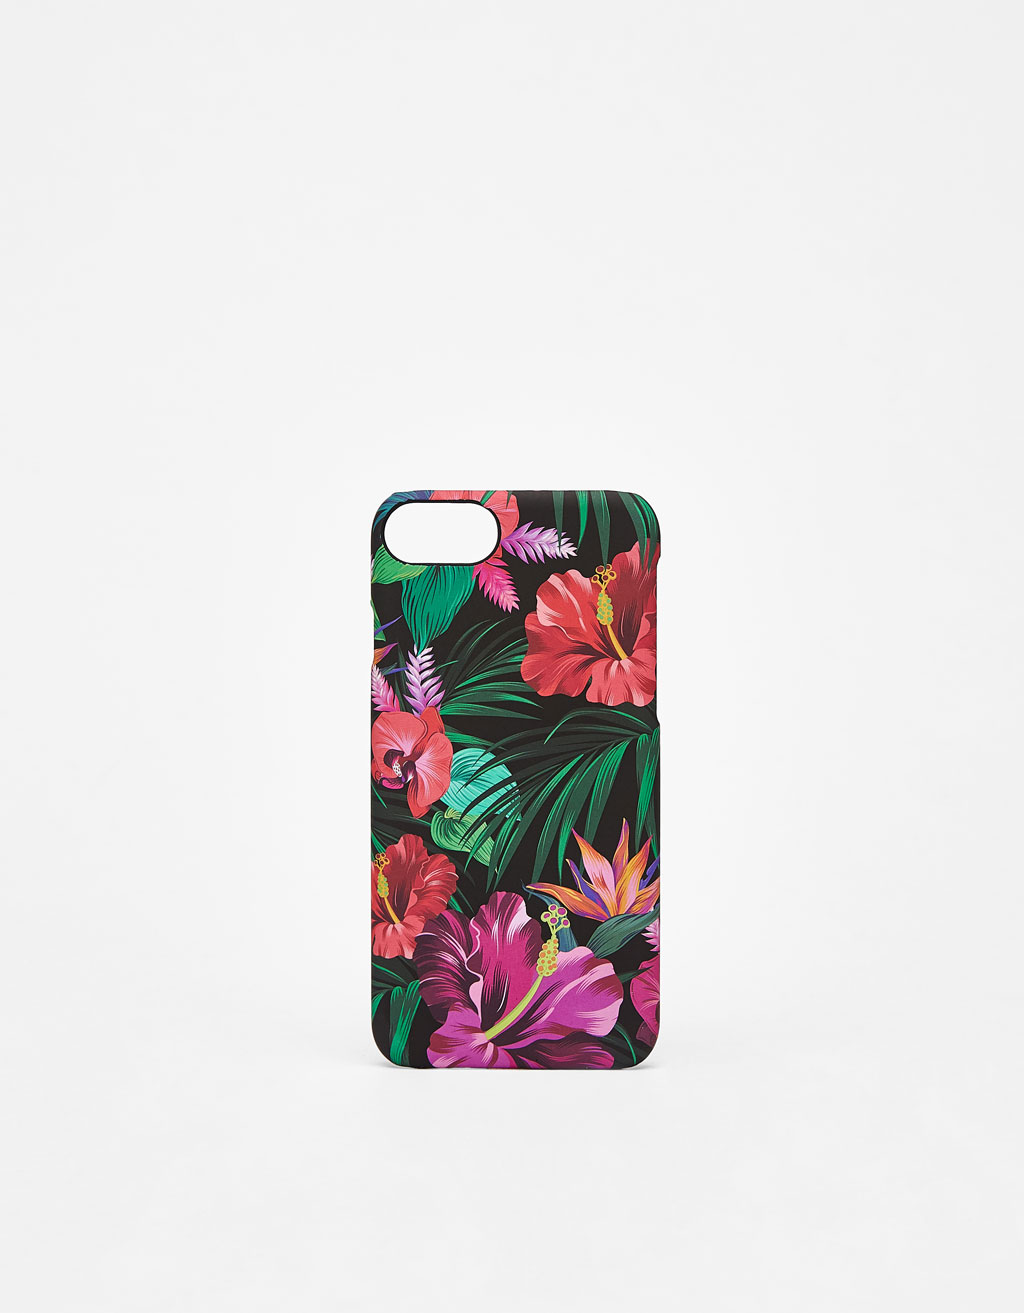 Tropical flower iPhone 6/6s/7/8 case